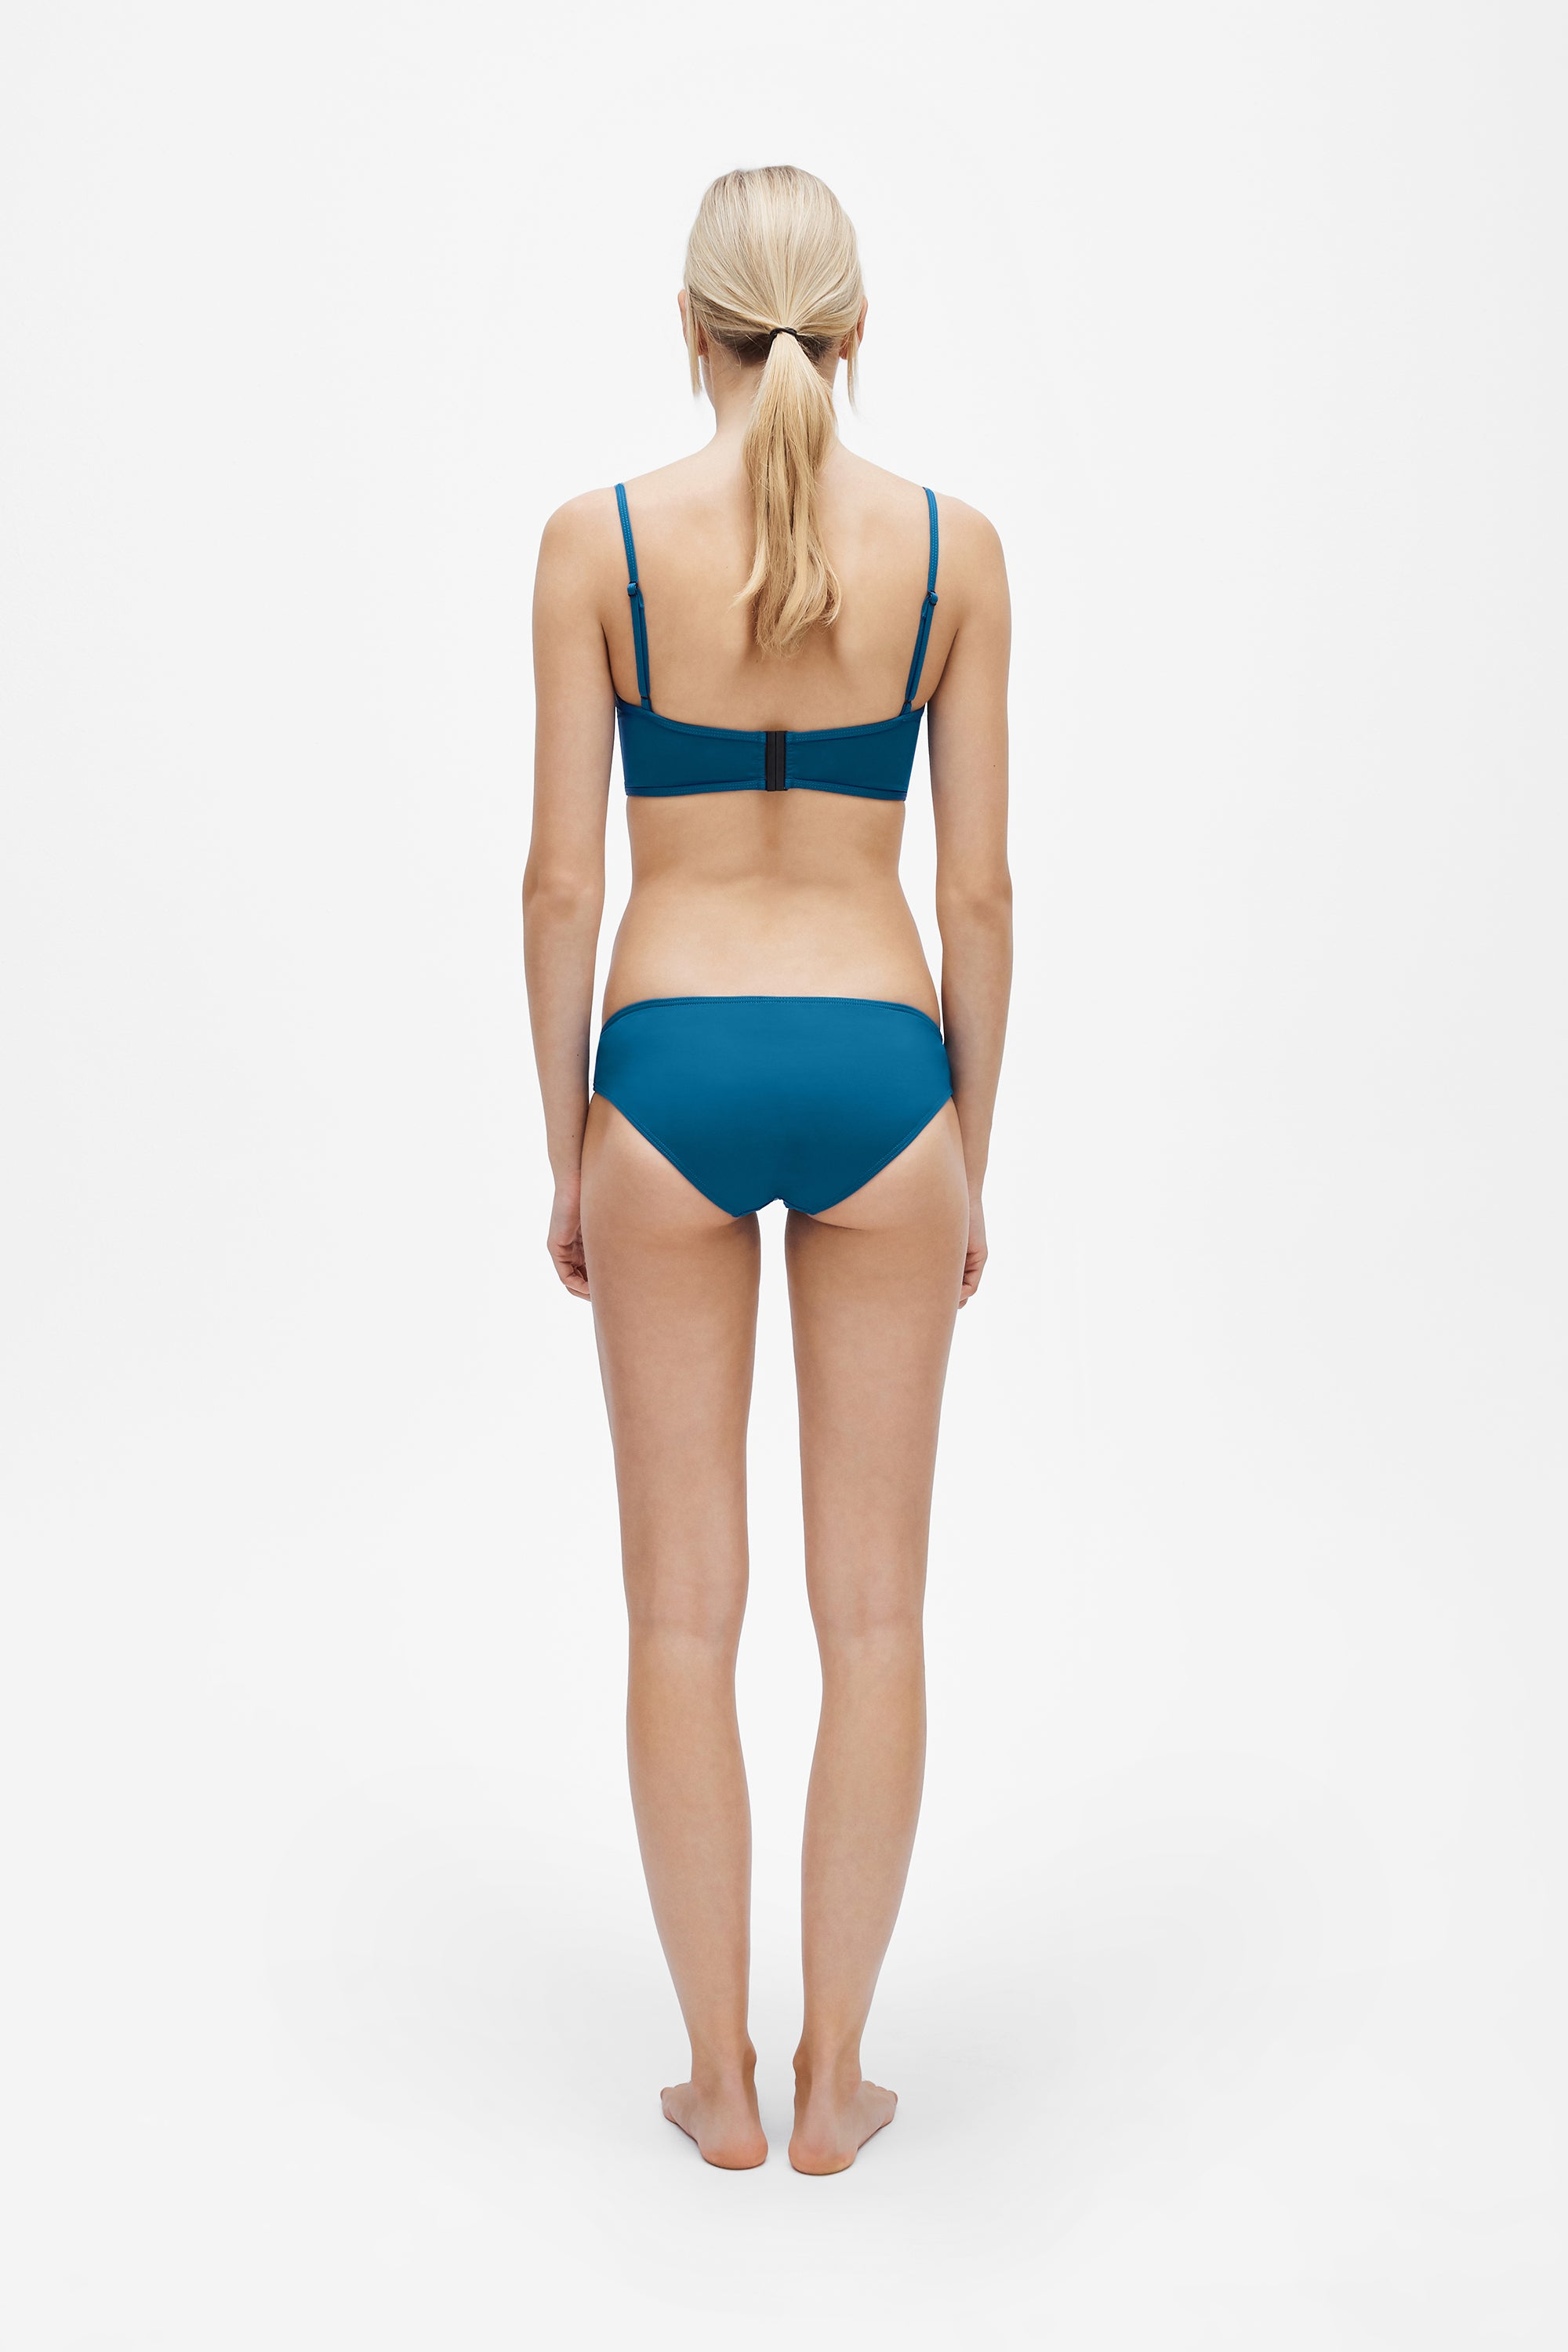 Suzi top - True blue - Swim top - Her Line